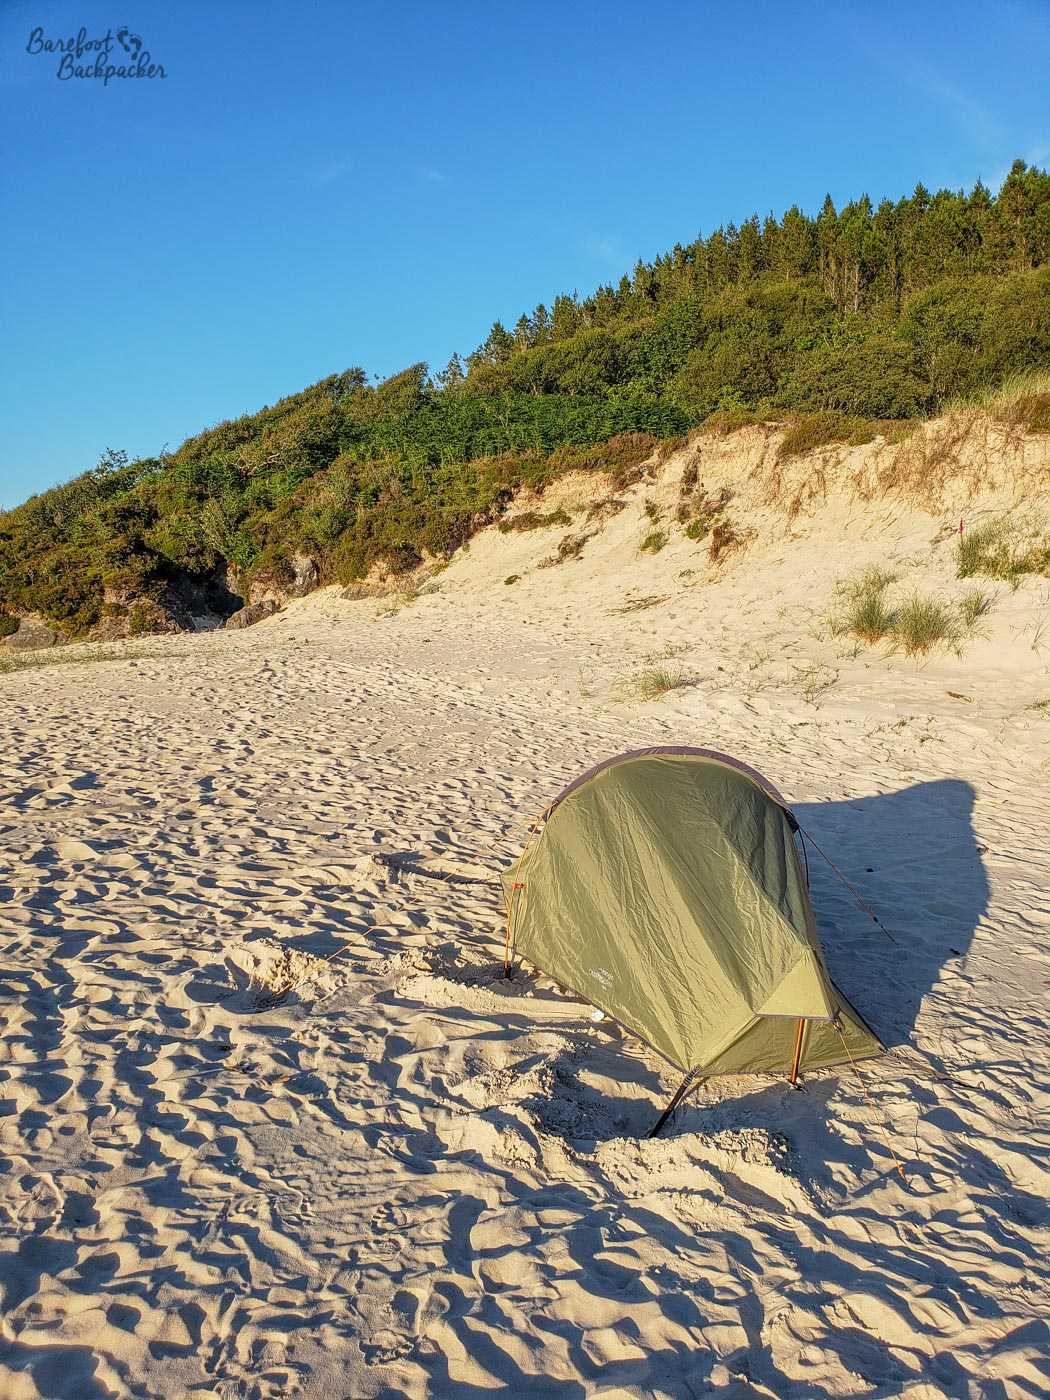 Green tent stands on pale sand, and behind, the land rises quite sharply, almost cliff-like, covered with shrub, tending to trees at the top. Completely blue sky. Lots of sunshine.